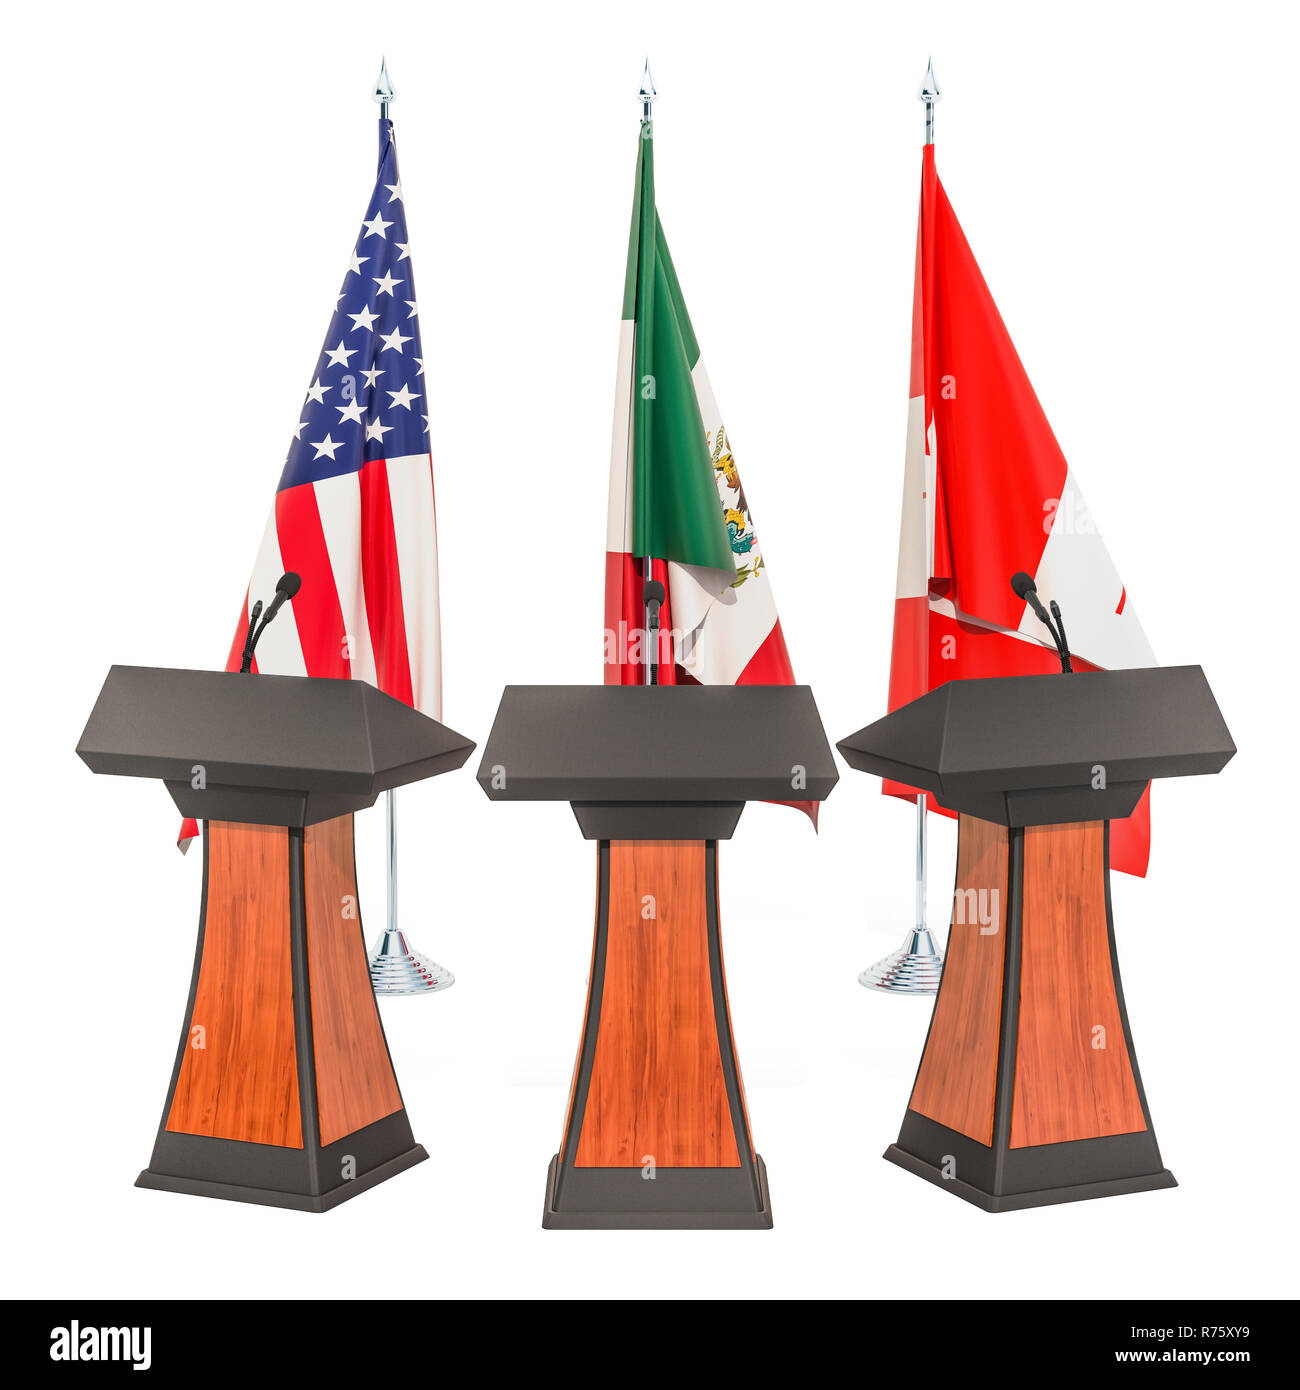 United States - Mexico - Canada Agreement, USMCA or NAFTA meeting concept. 3D rendering Stock Photo